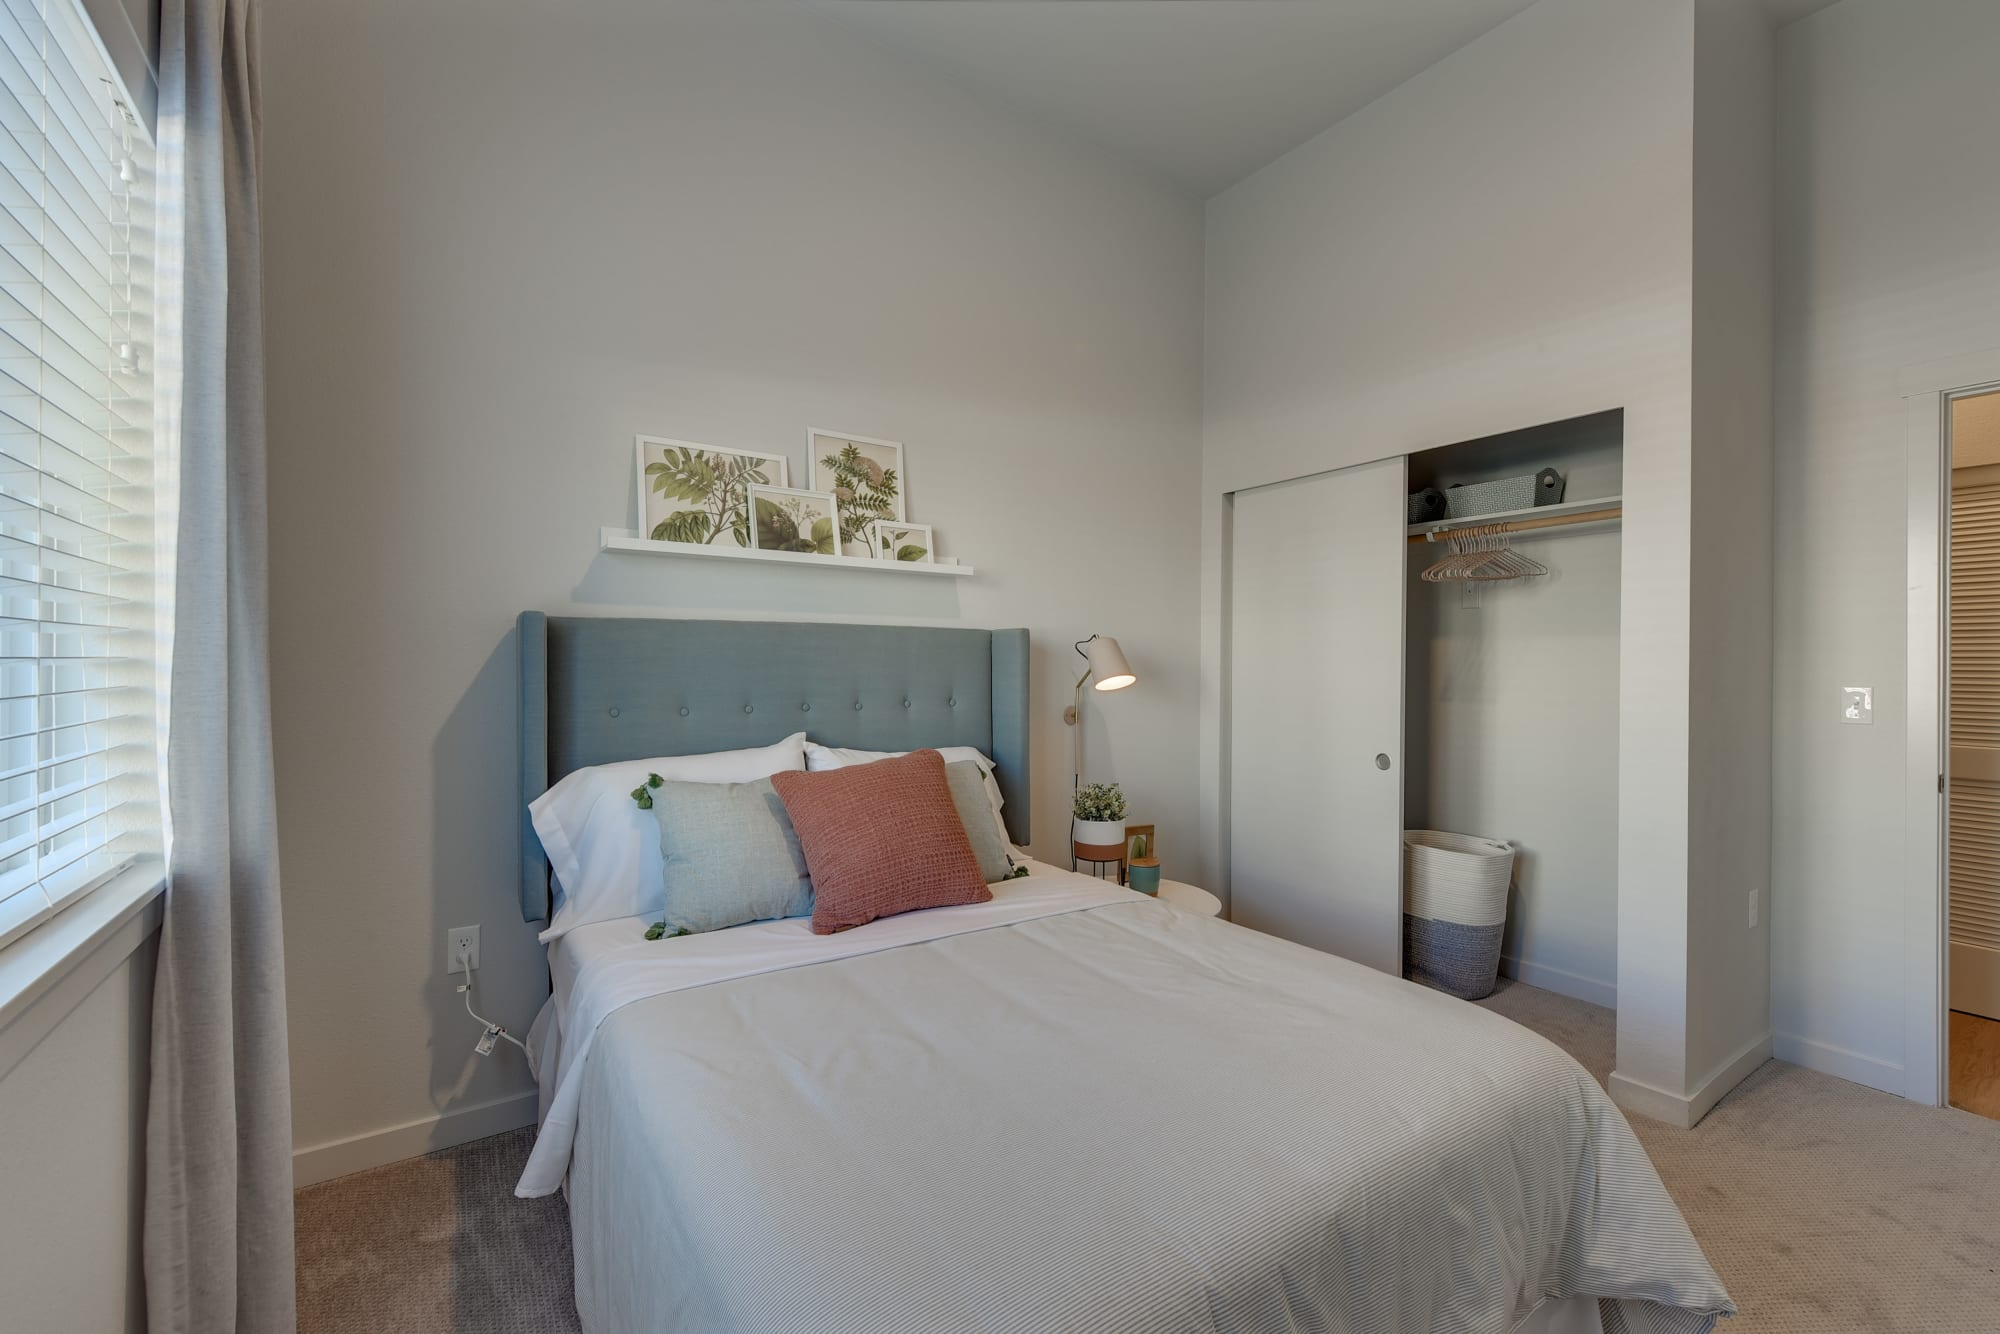 A main bedroom, with ceiling fan, at Kestrel Park in Vancouver, Washington